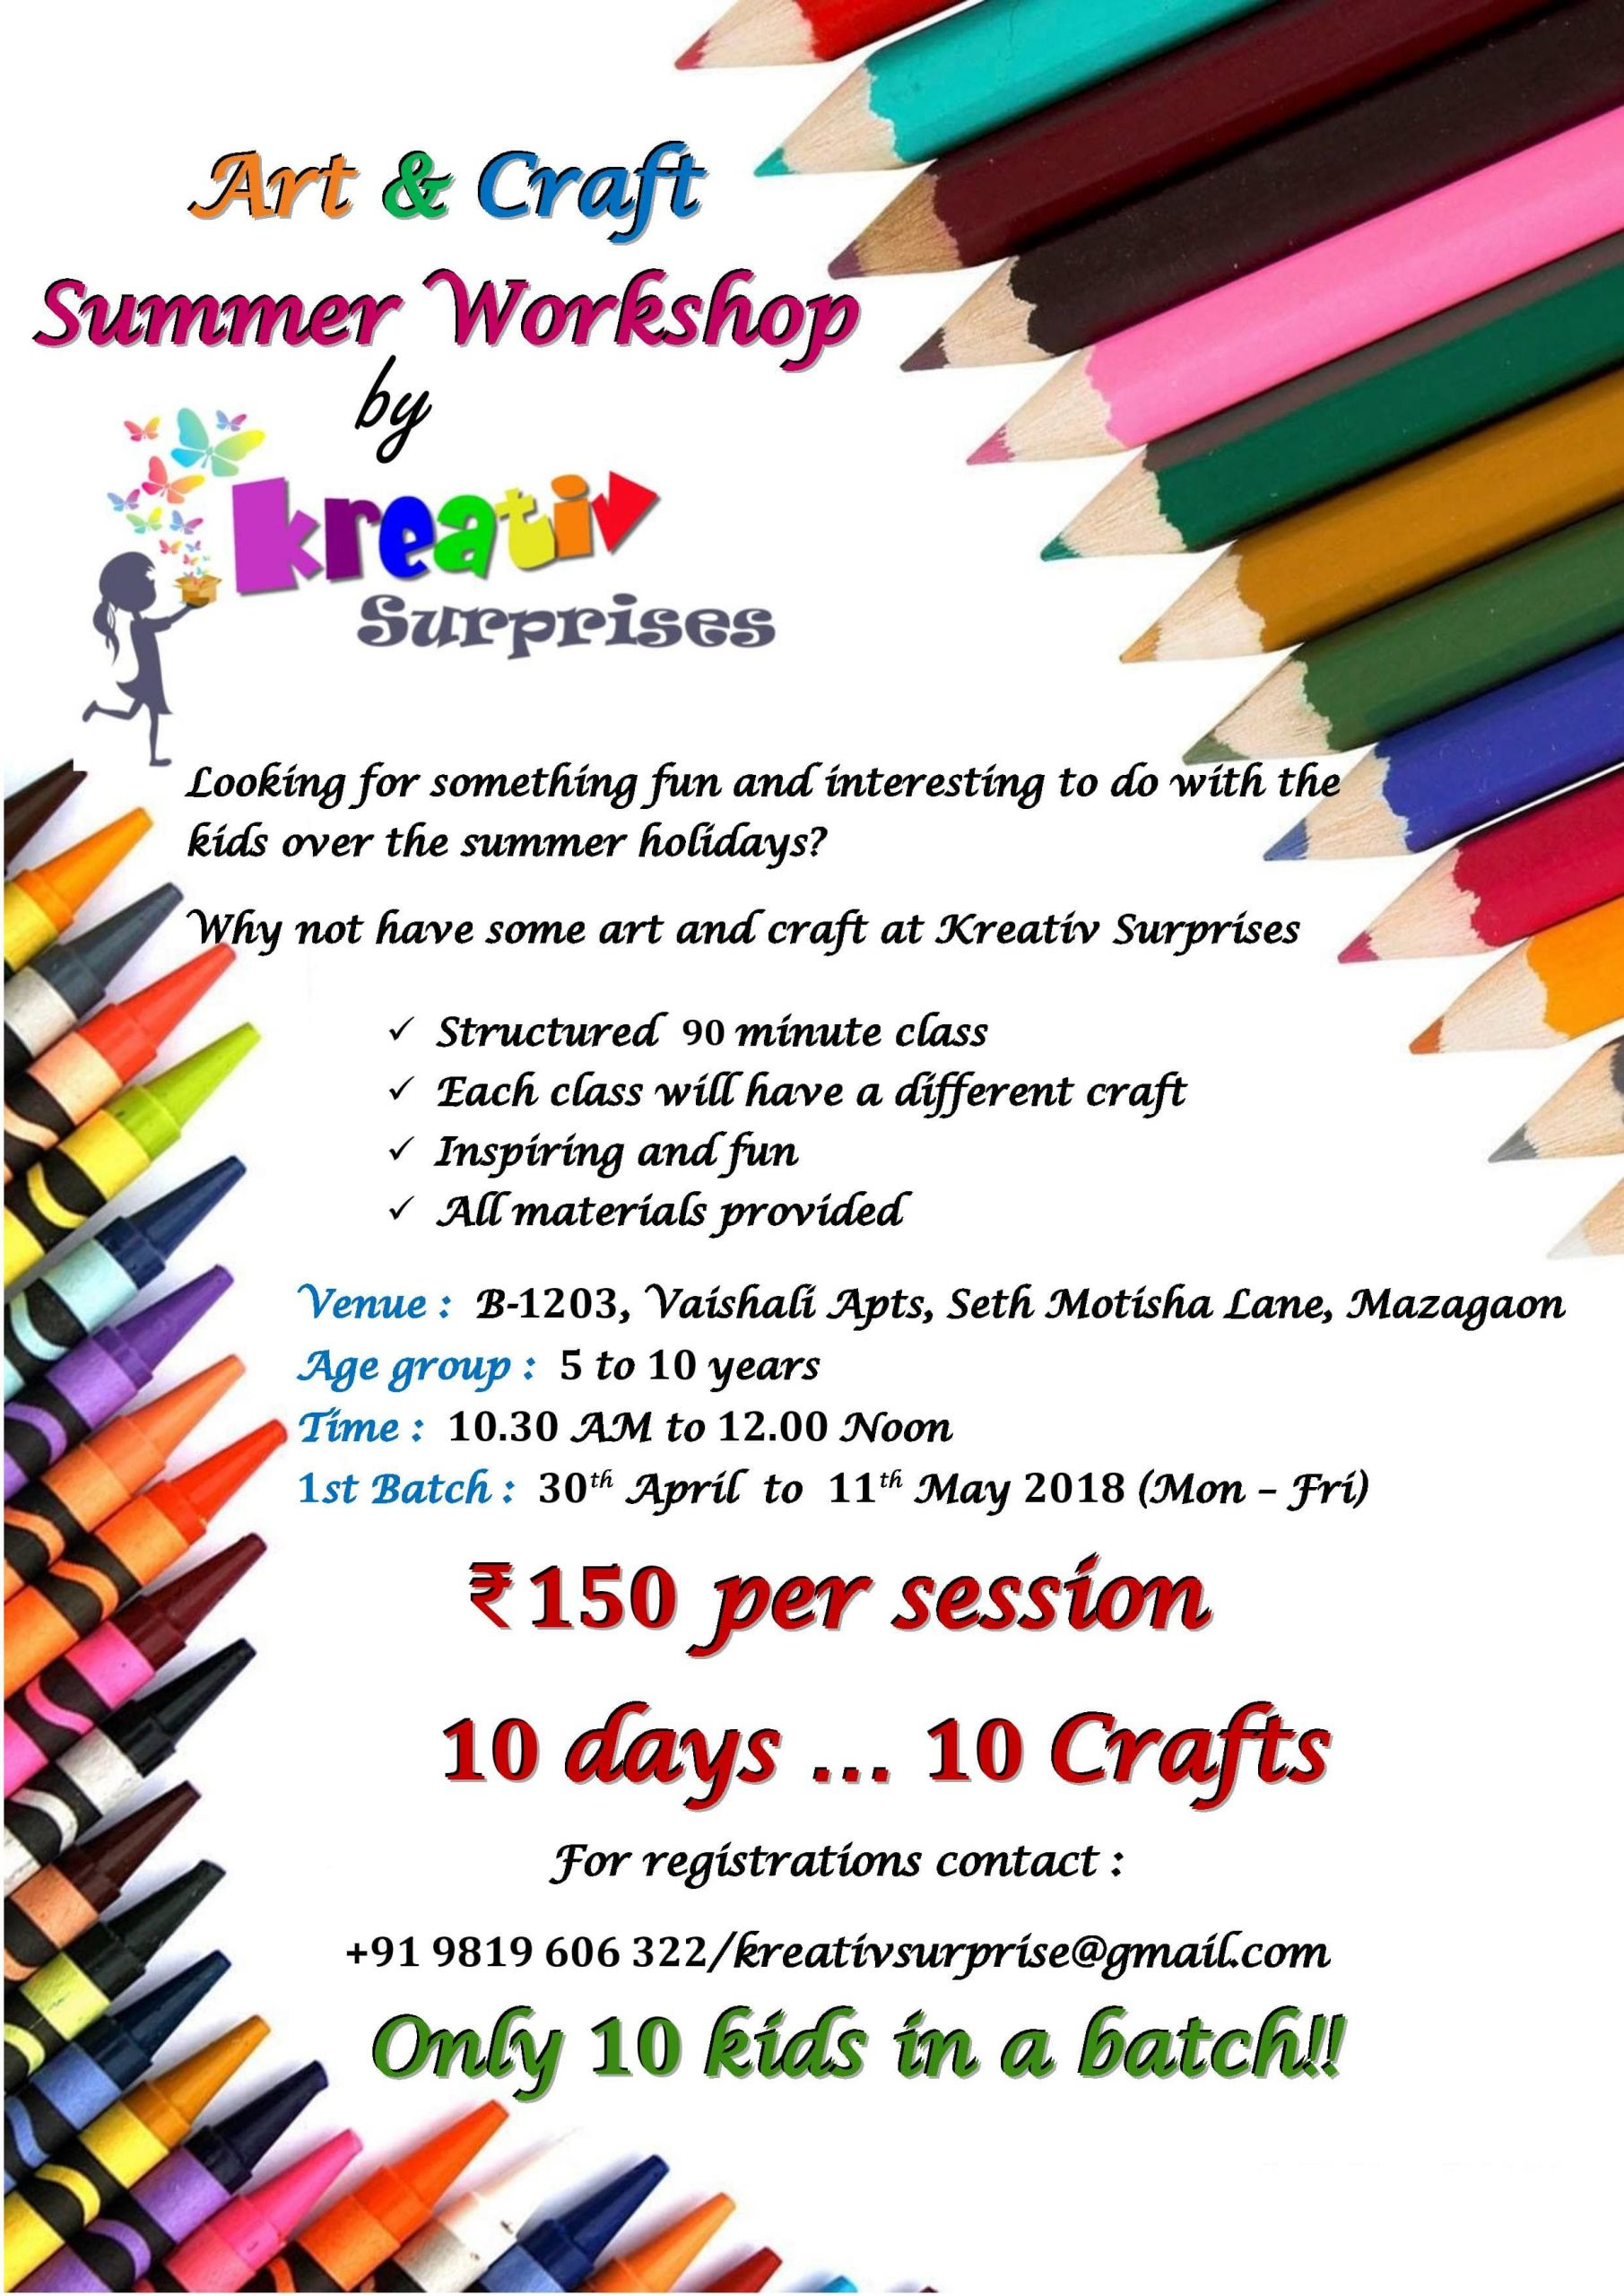 Workshop Ideas For Adults  Art and Craft Workshop by Kreativ Surprises